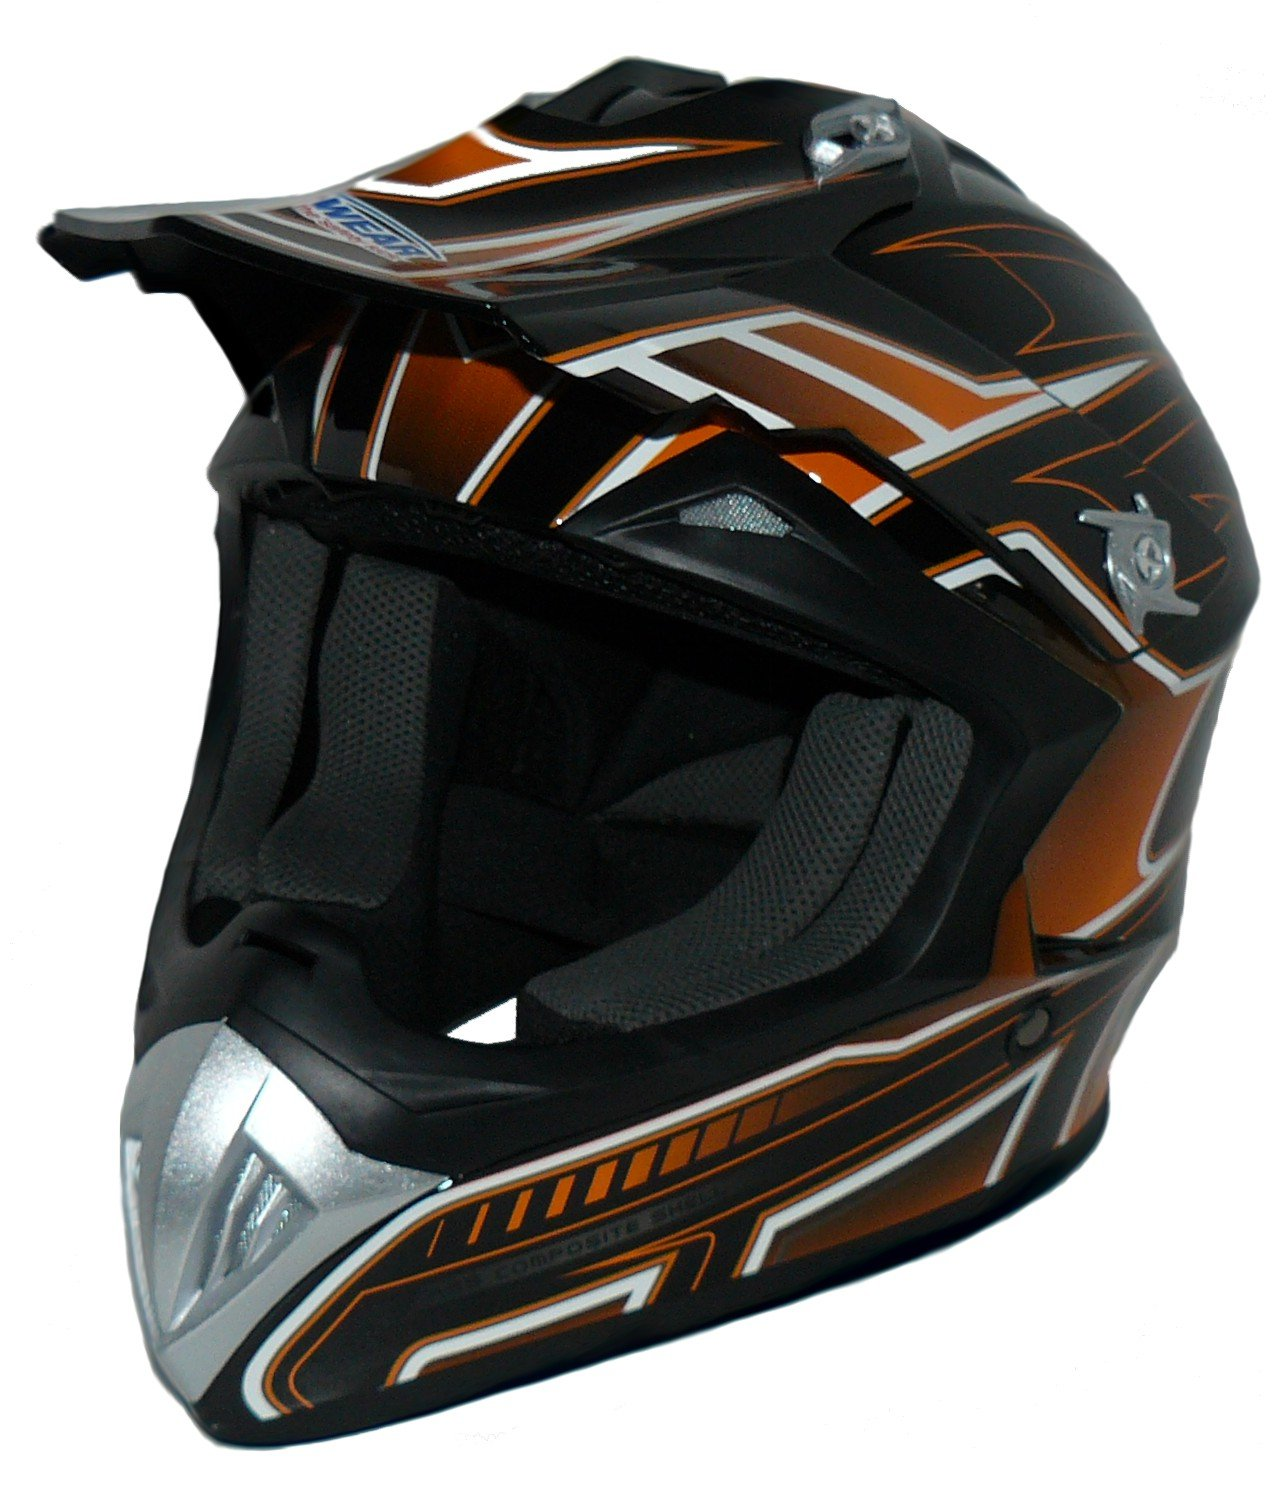 orange-noir casque de Cross FS603-OR casque Enduro Taille: XL Protectwear casque de moto